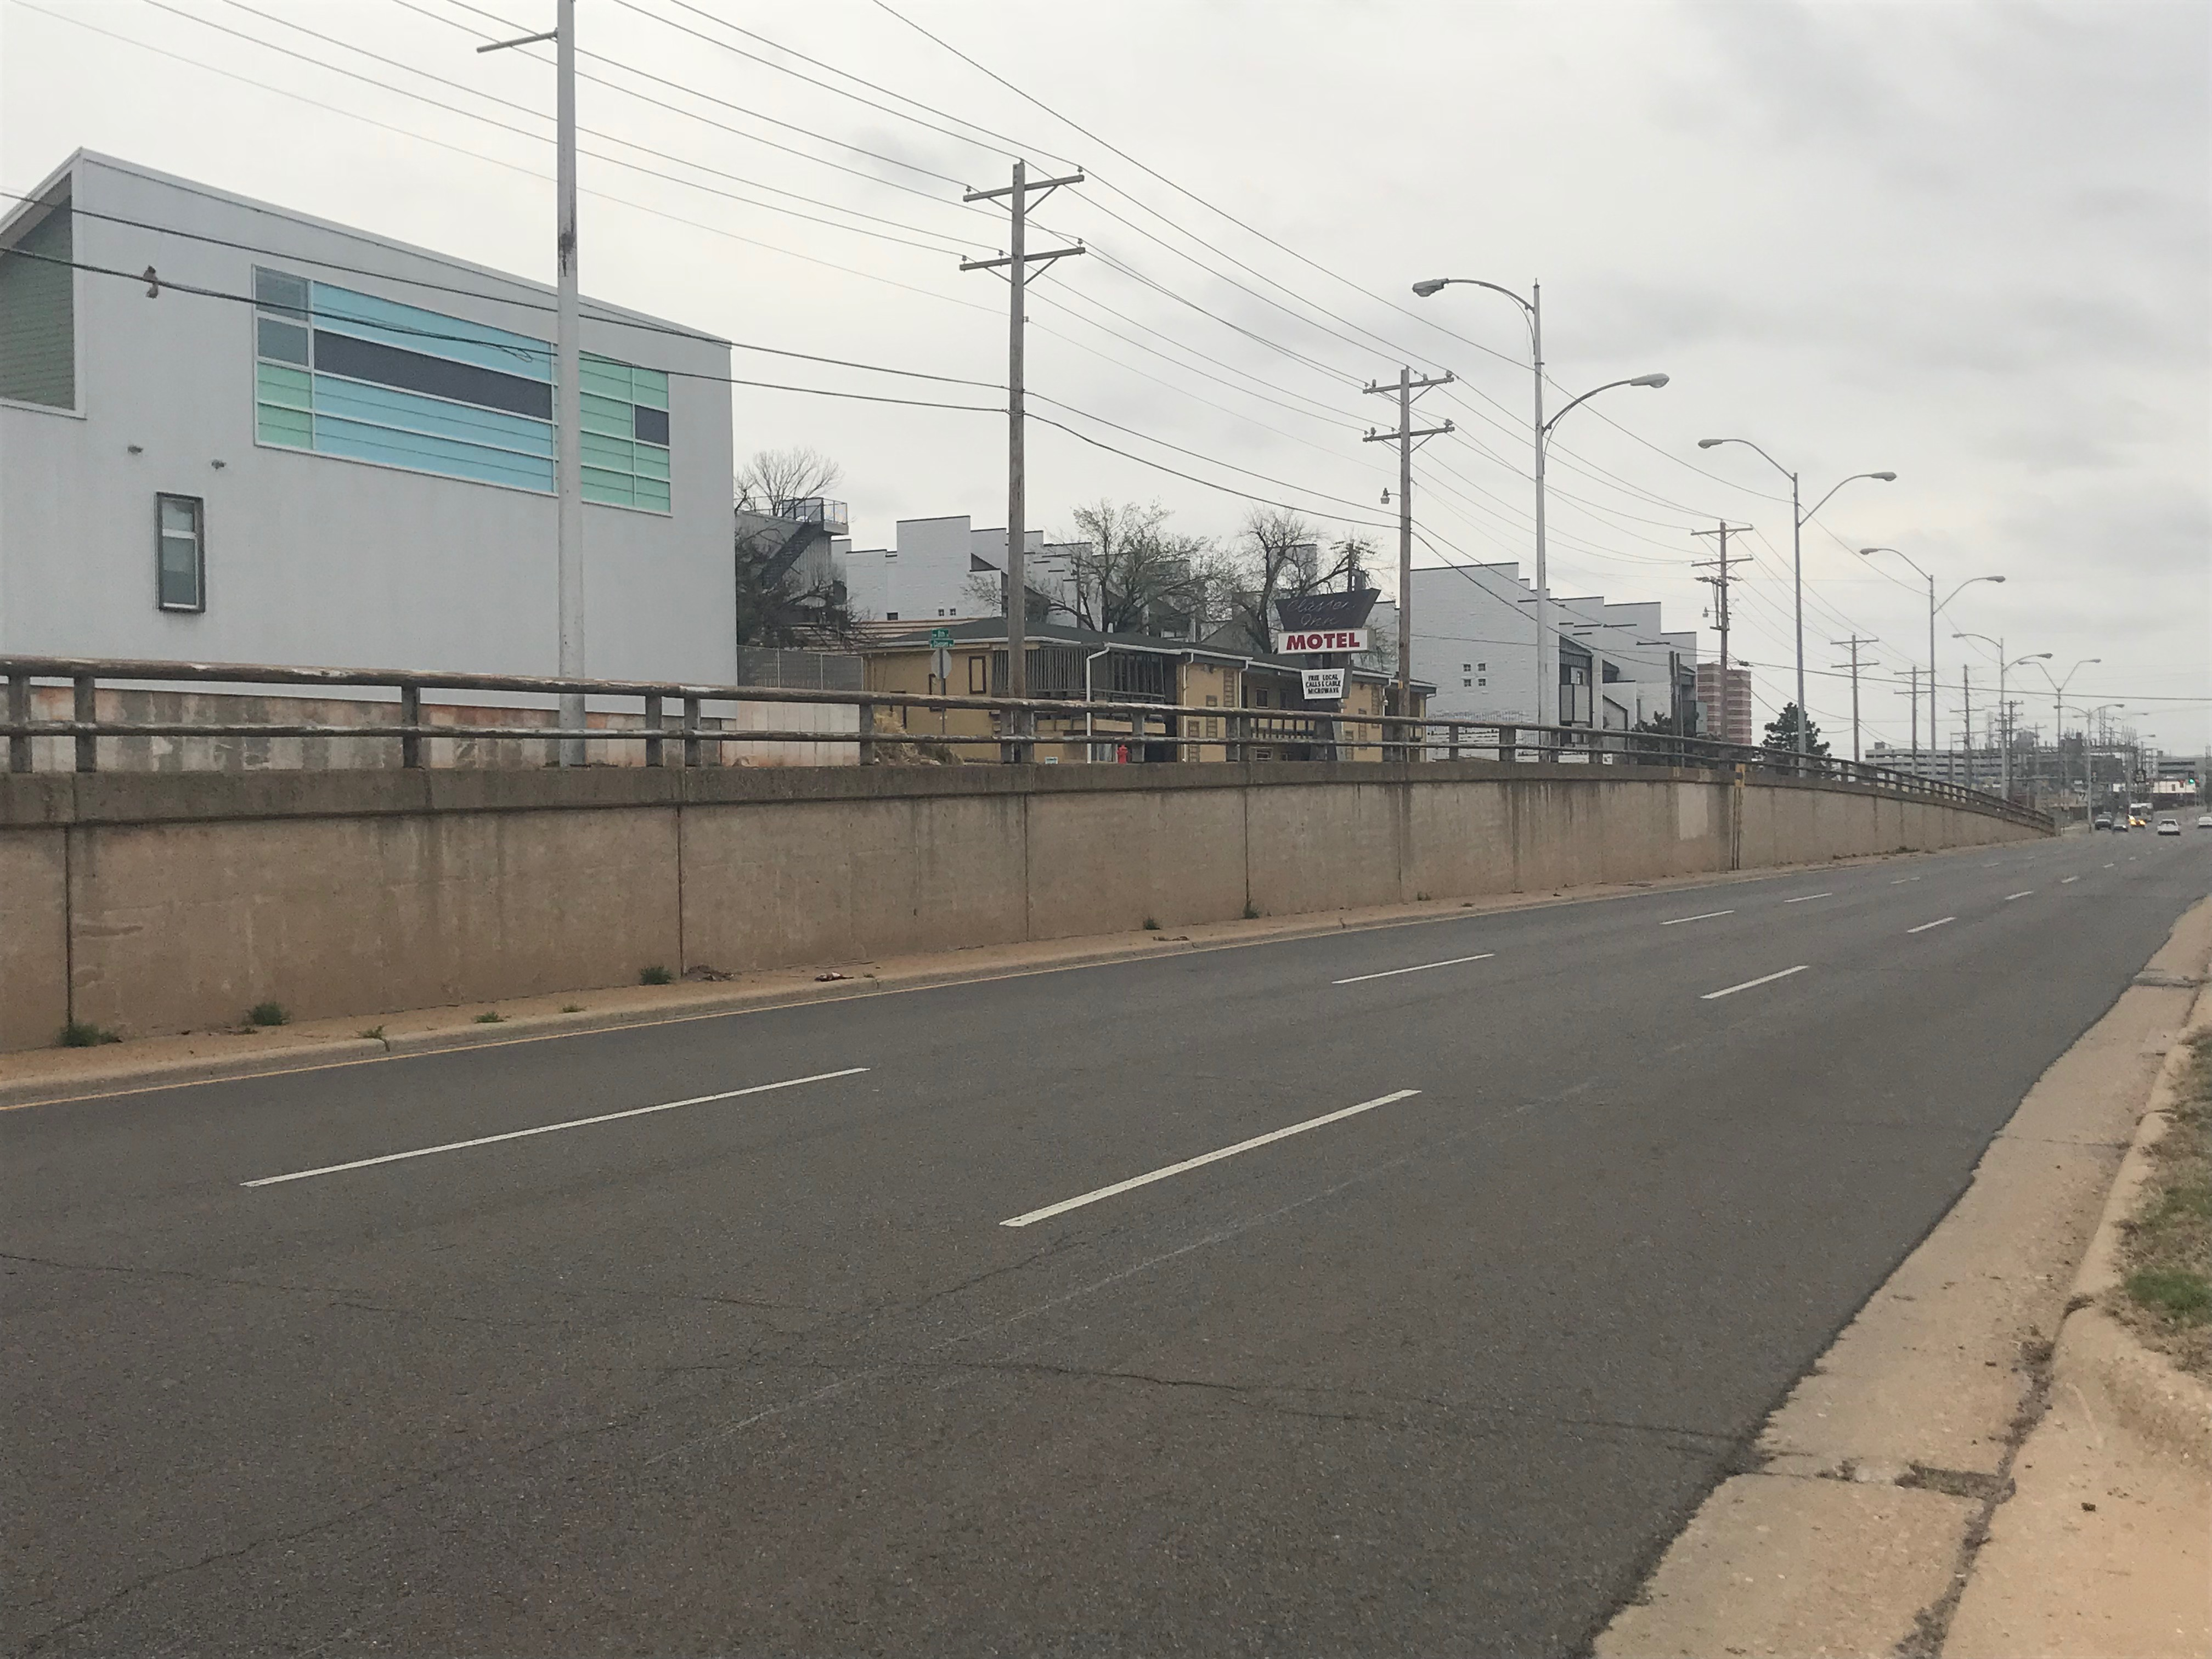 West side of Classen Blvd, divider between NW 9TH and 7TH streets